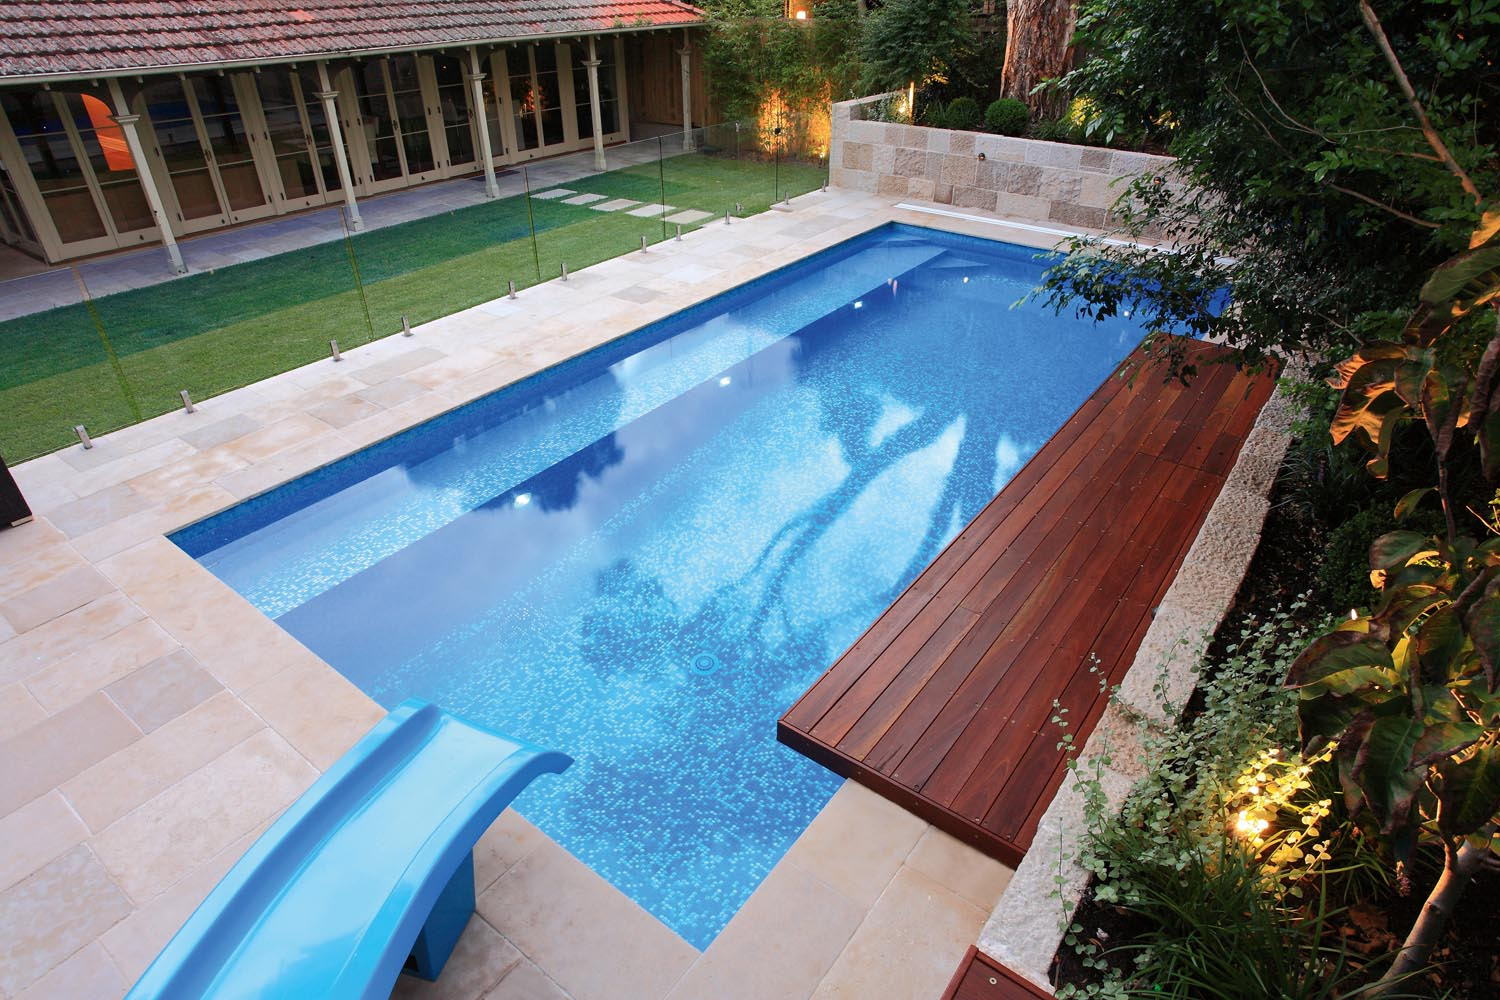 A modern pool view from above with a bench and a water slide